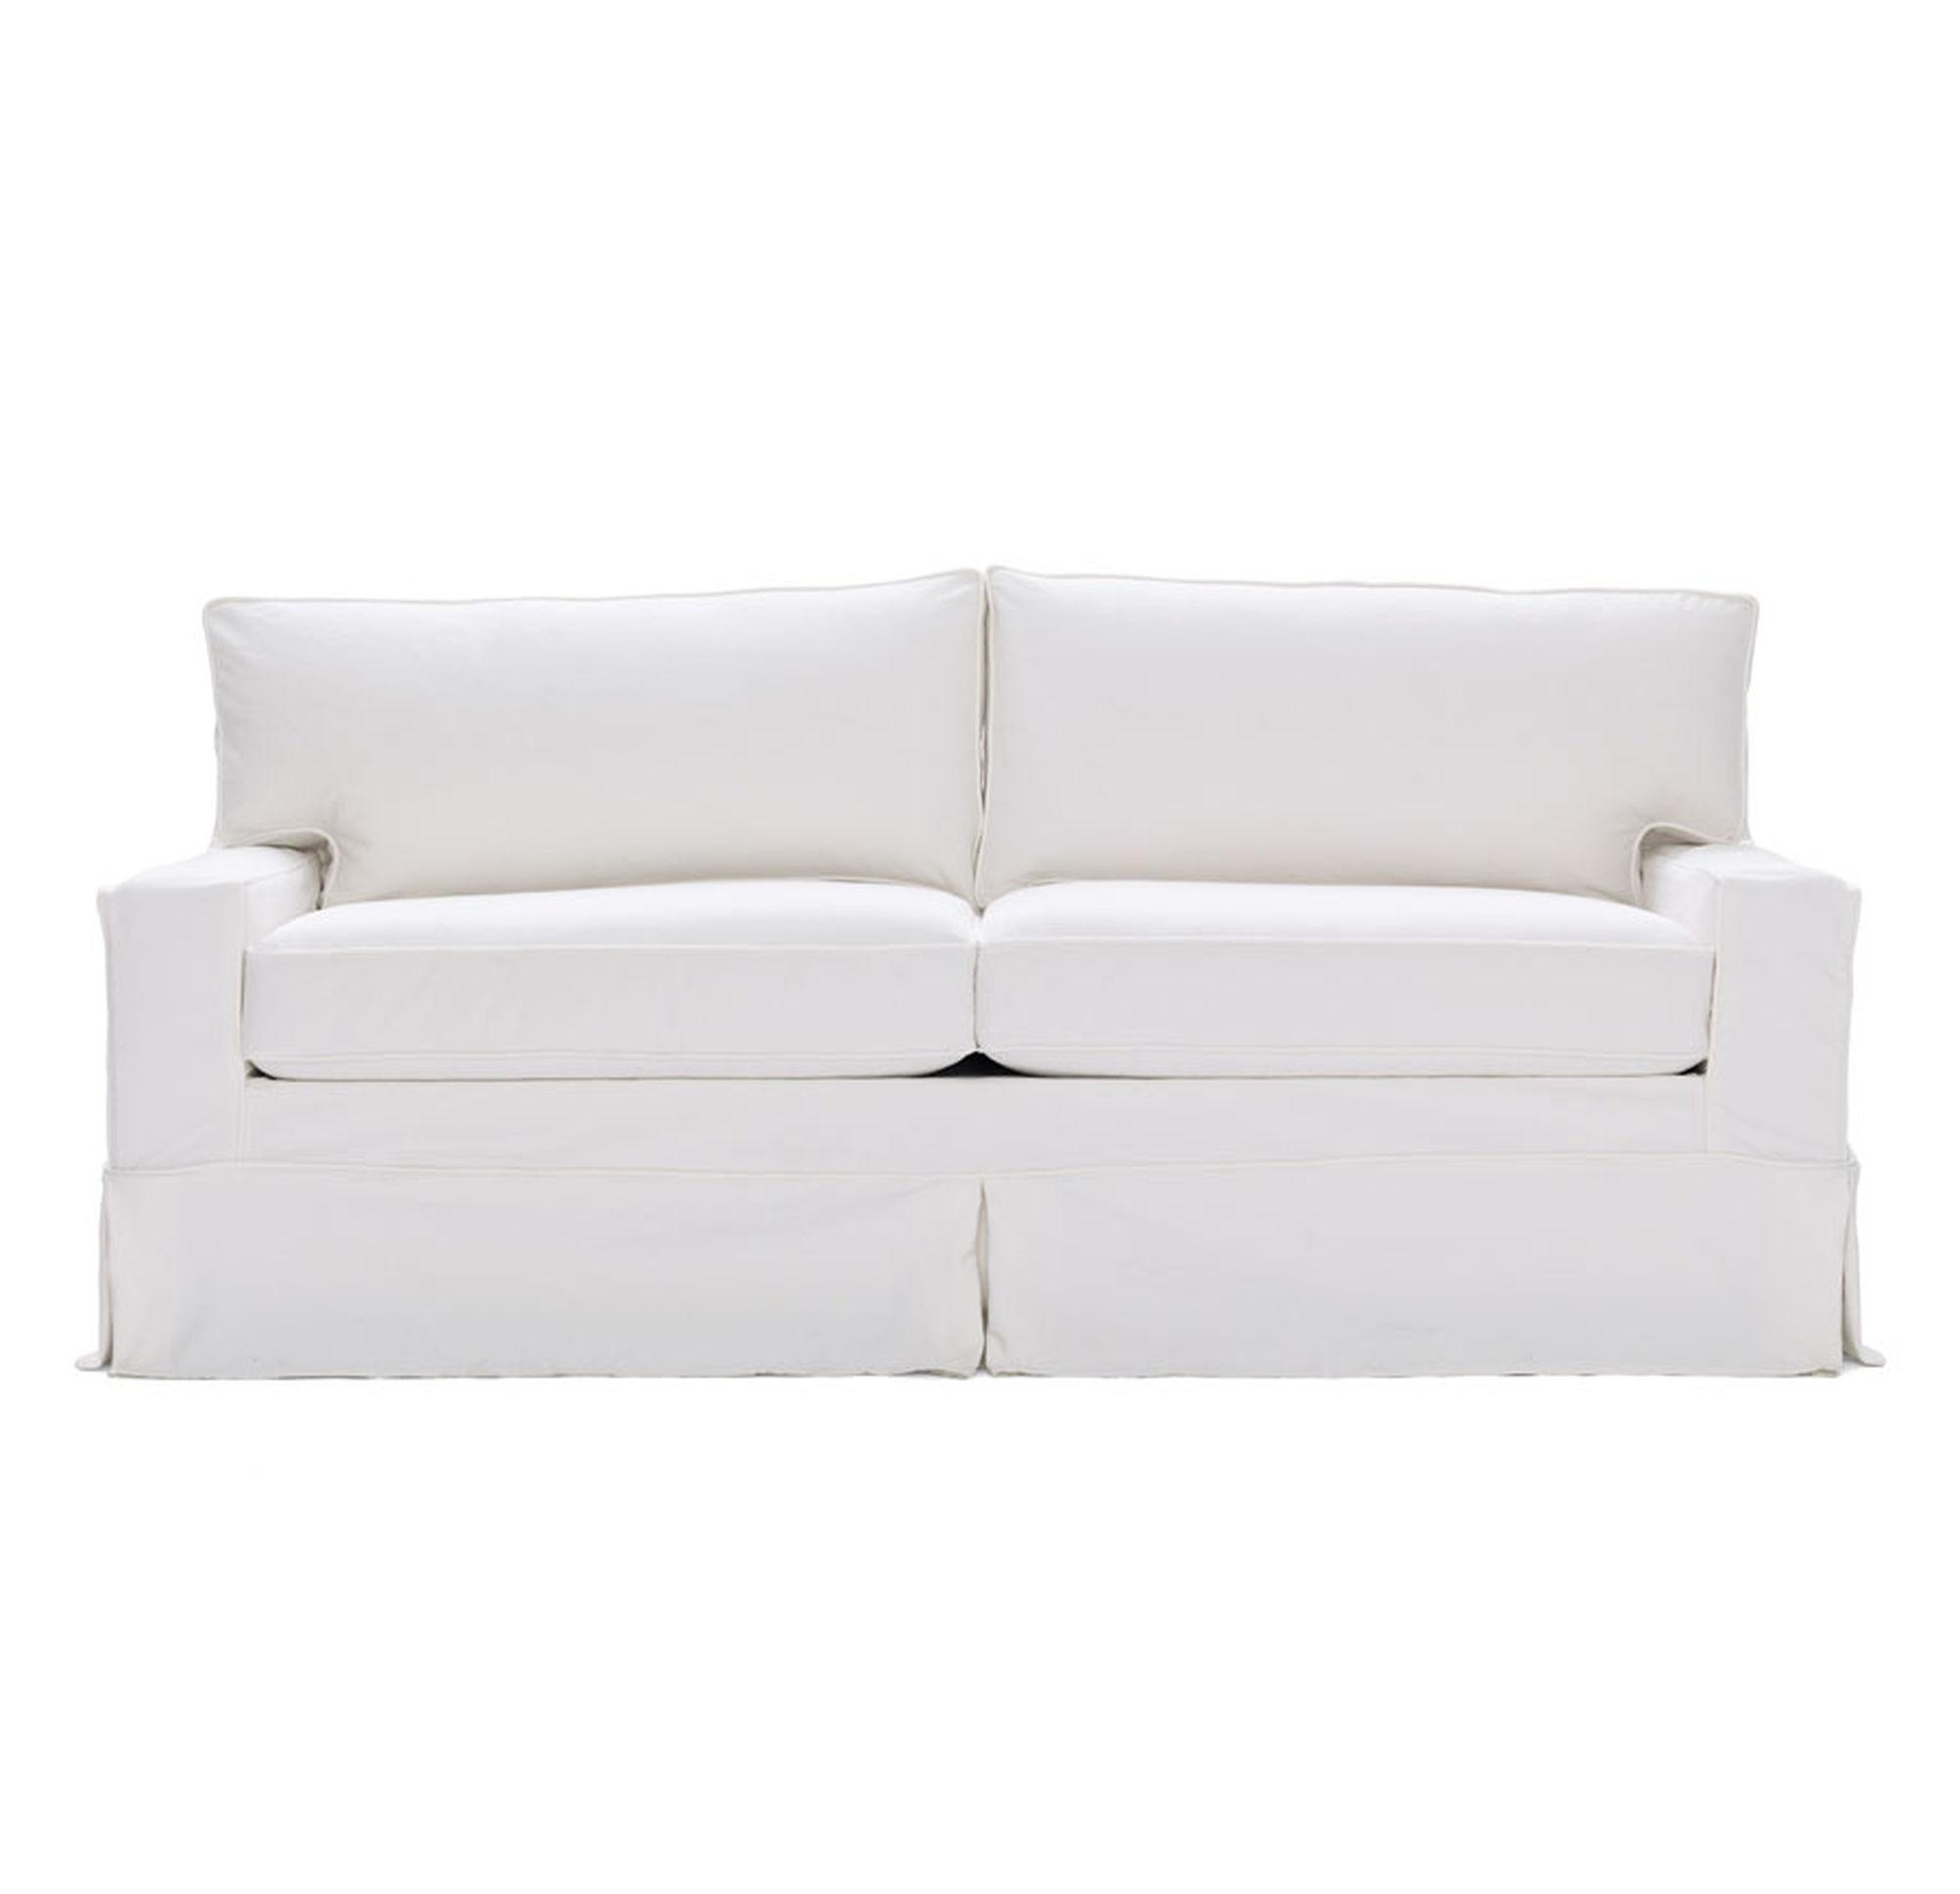 alex ii 89 sofa slipcover lazy boy sleeper dimensions 20 best slipcovers for sofas ideas